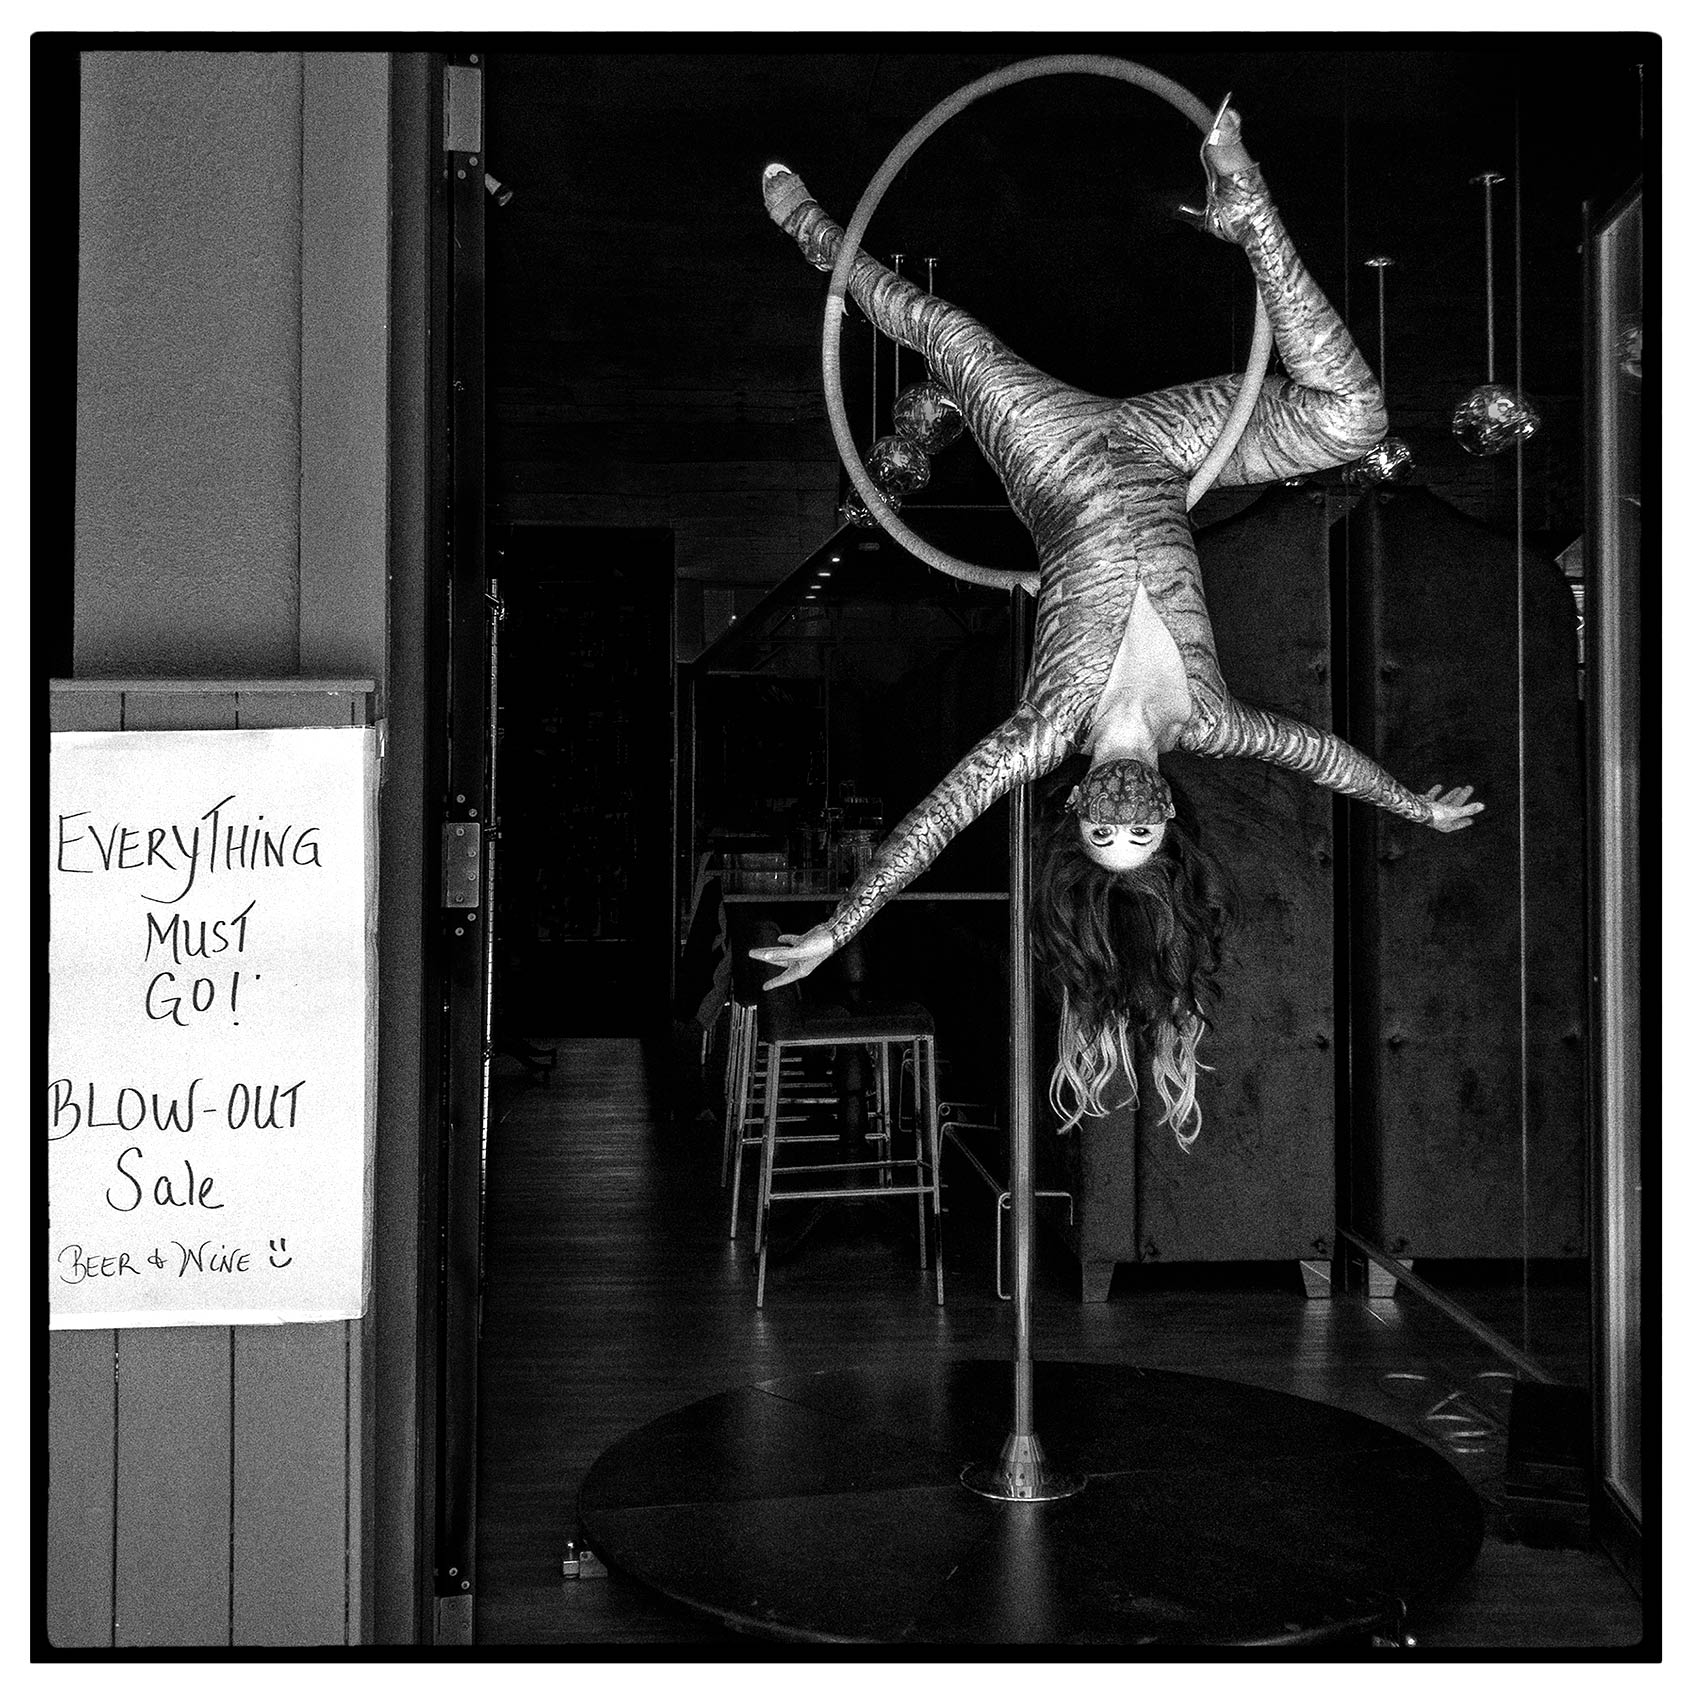 a restaurant sells off its alcohol during the pandemic by using an acrobat during covid-19